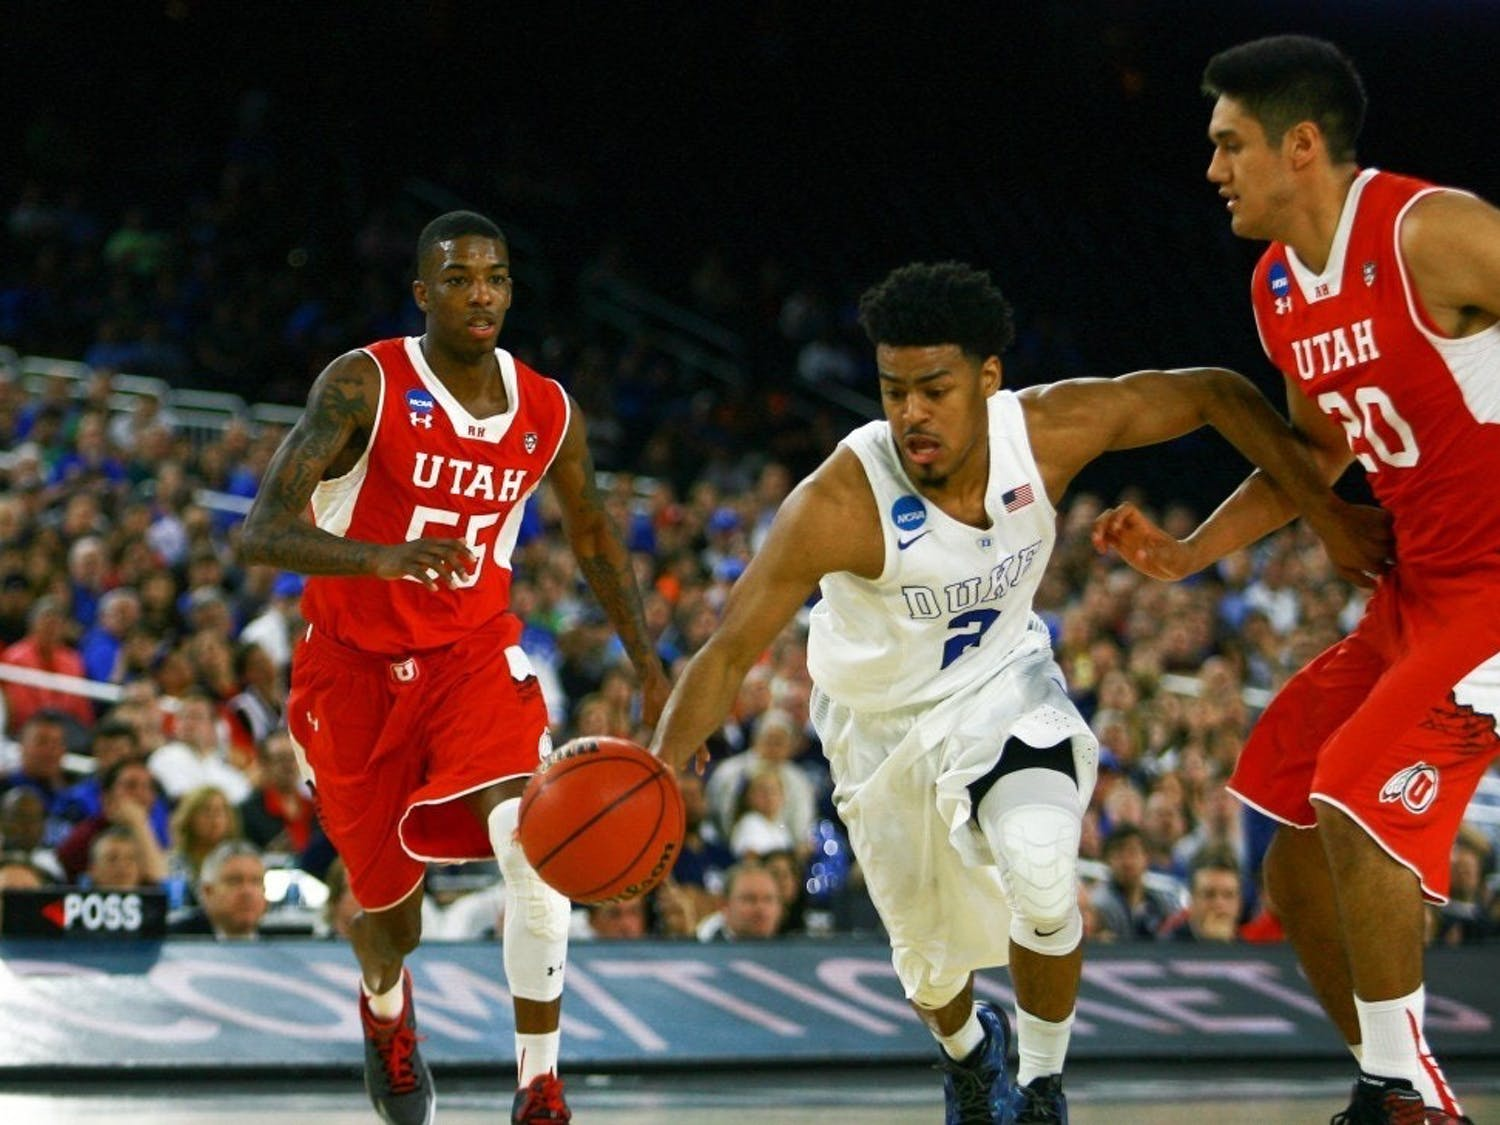 After the Lakers' win and the Celtics' loss, Quinn Cook becomes the sole former Blue Devil remaining in the NBA playoffs.